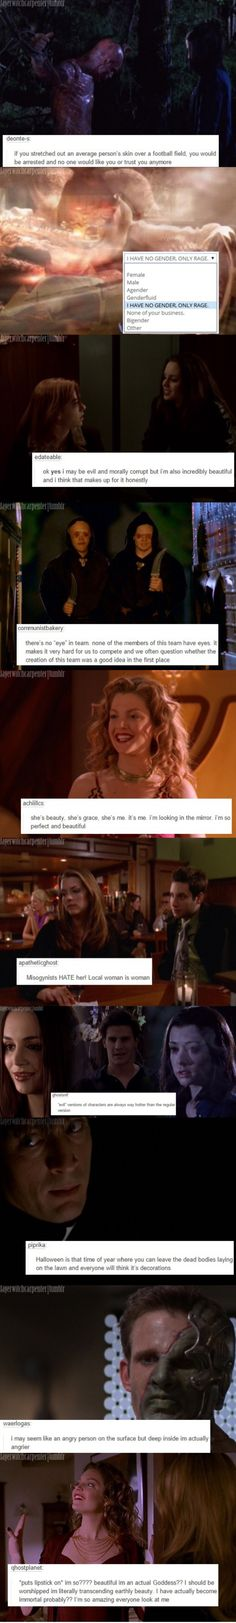 Go check out this blog if you like Buffy, it's great